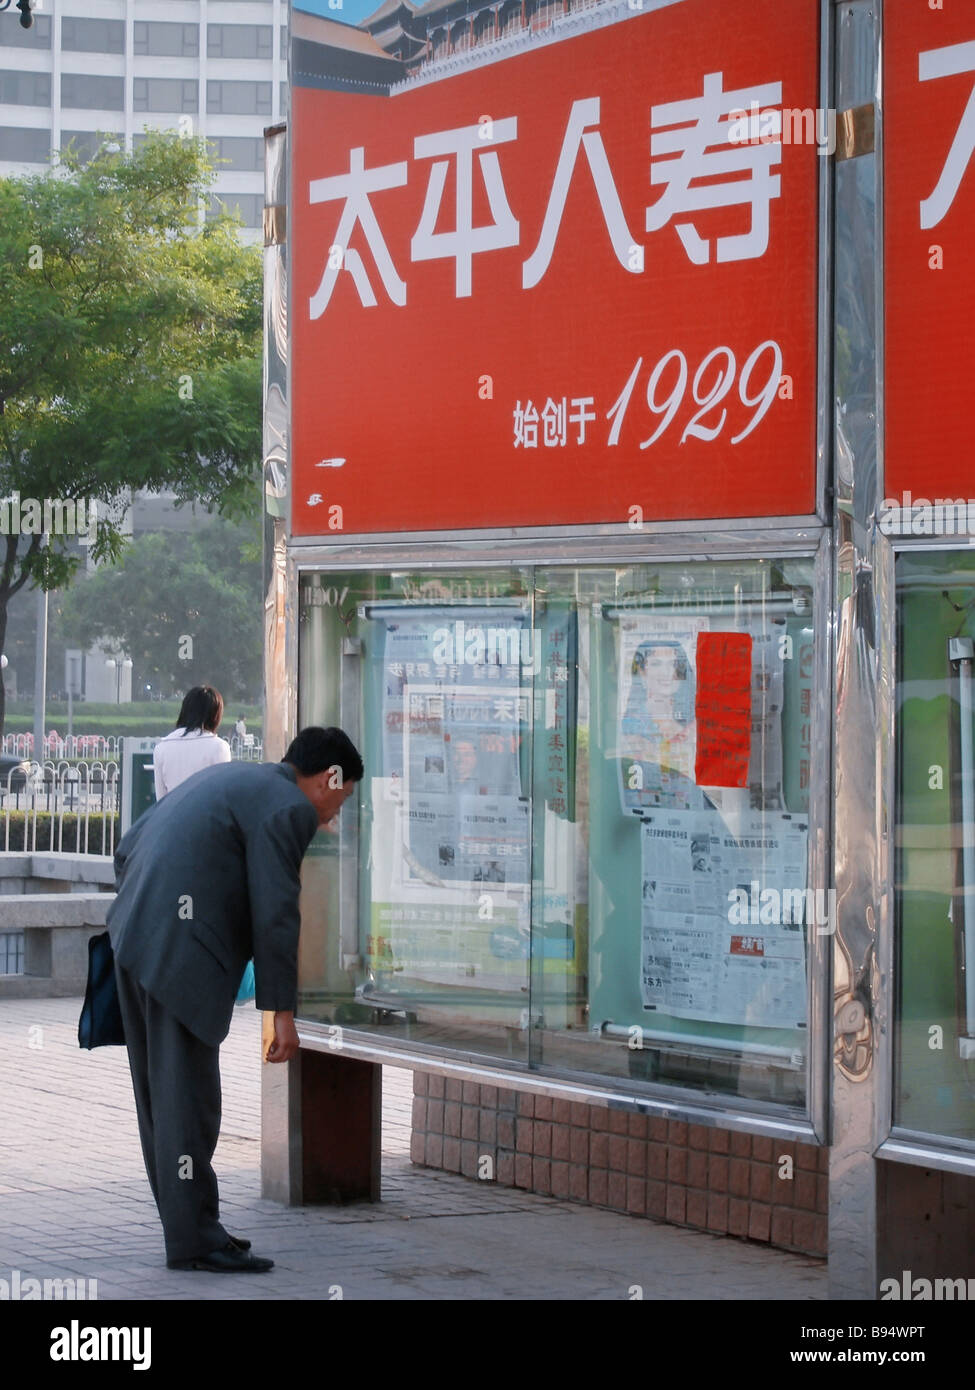 Many in the city customarily begin their day with reading morning newspapers on the stands - Stock Image